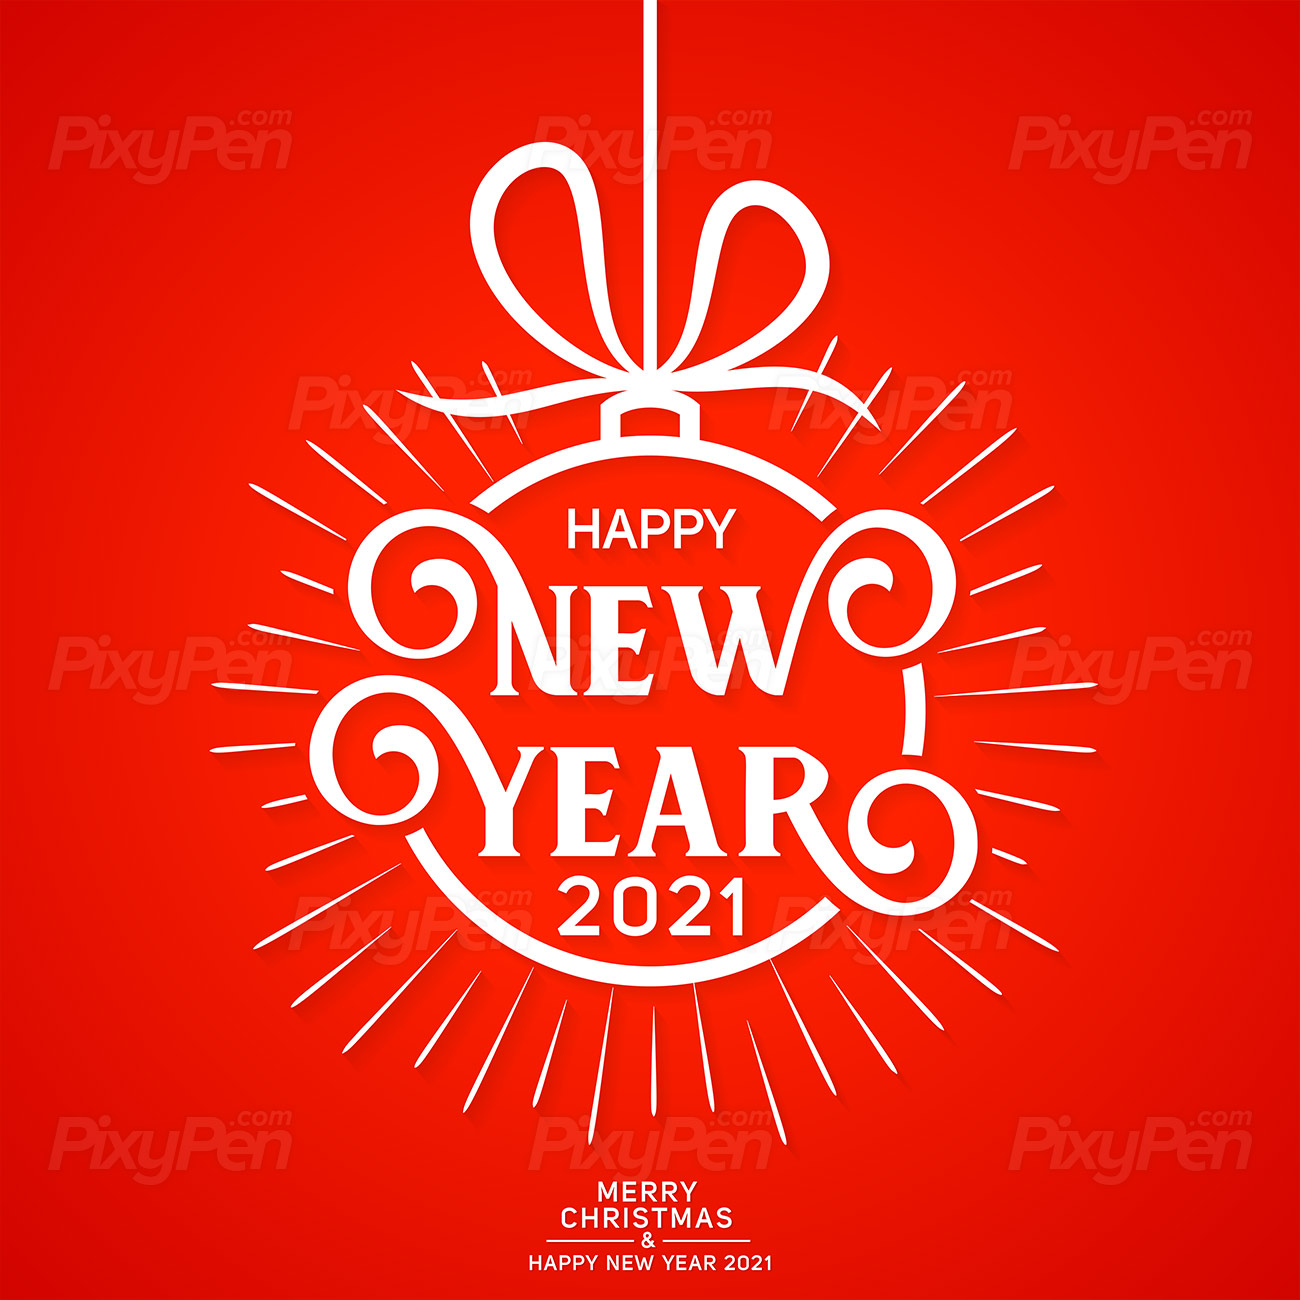 Merry Christmas and happy New Year 2021   Vector PixyPen 1300x1300